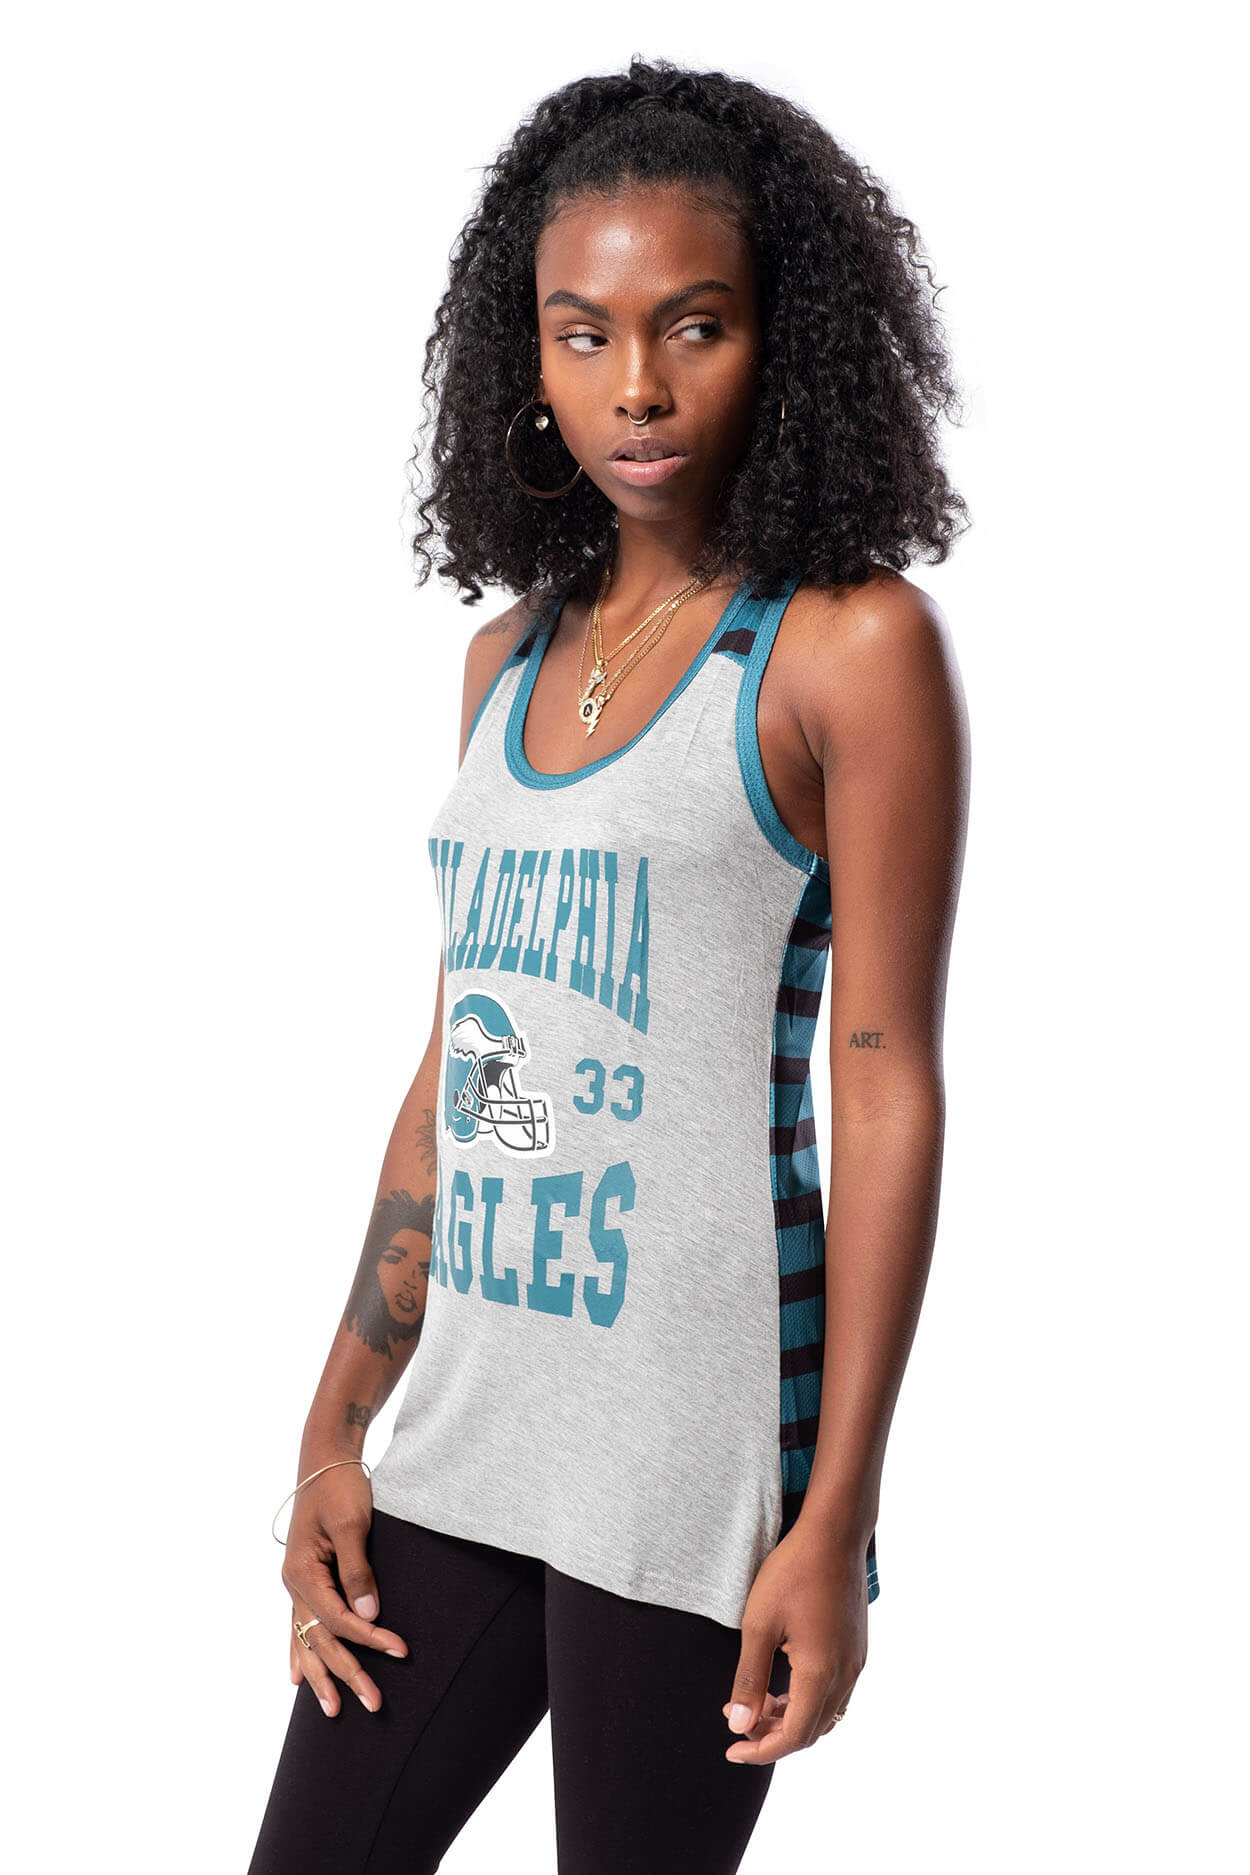 NFL Philadelphia Eagles Women's Jersey Tank Top|Philadelphia Eagles